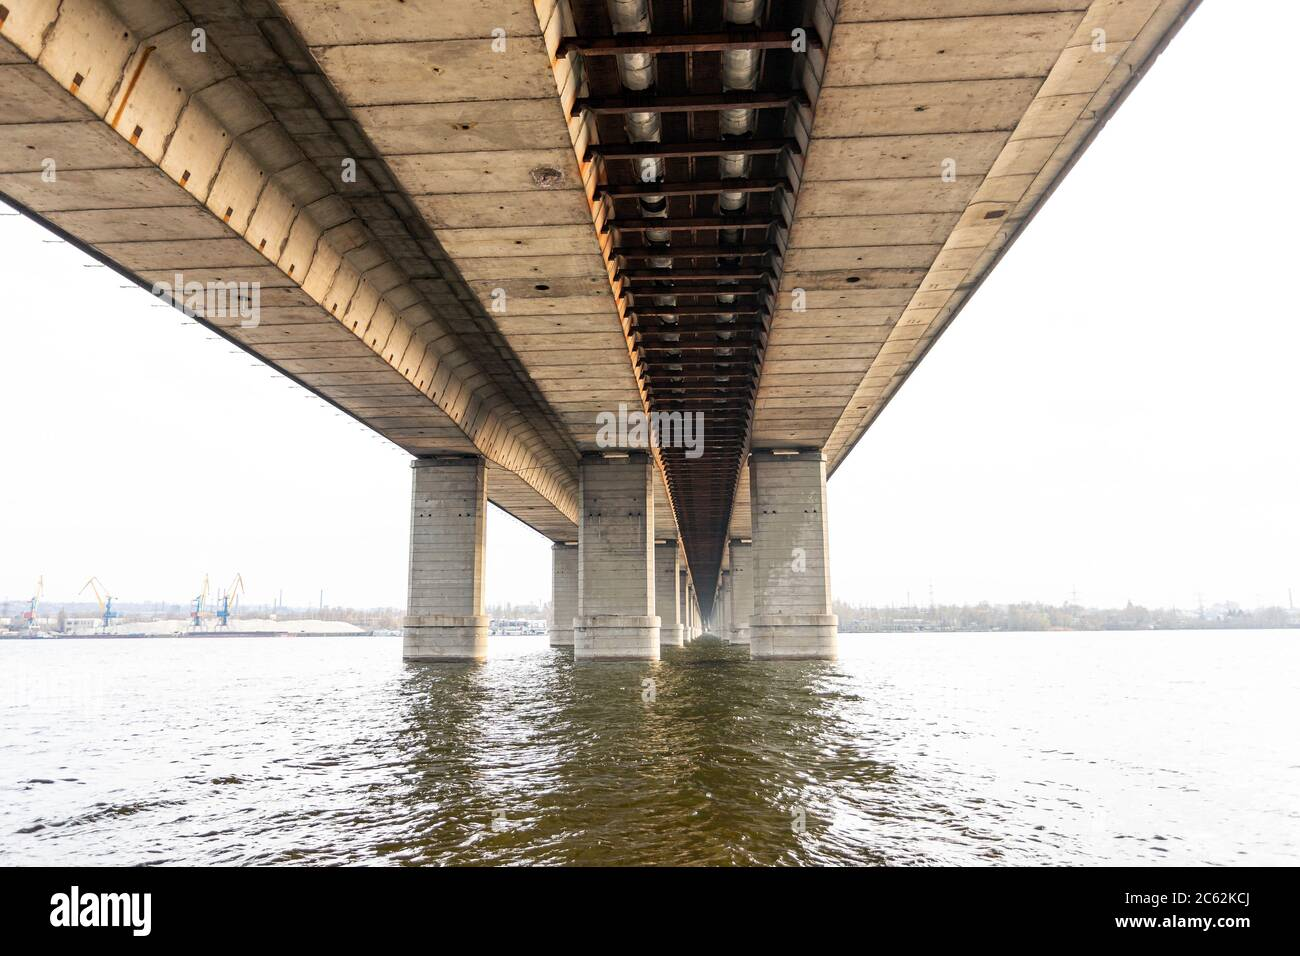 Concrete Piers High Resolution Stock Photography And Images Alamy